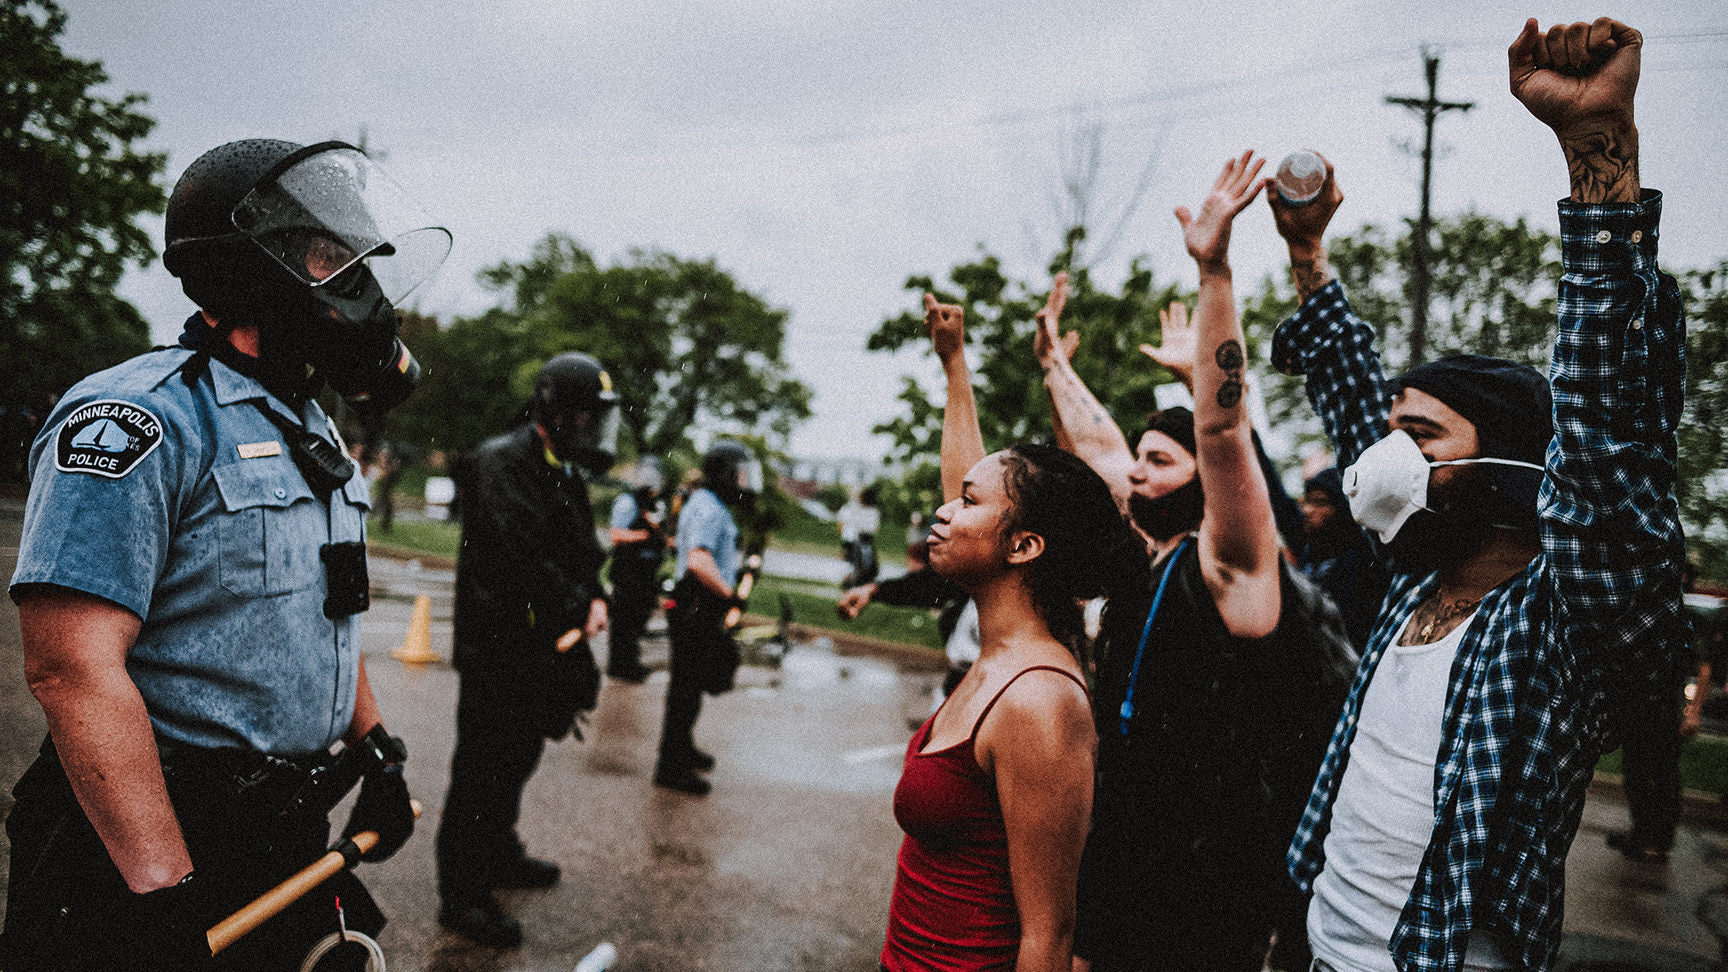 Protestors in Minnesota facing the police after the death of George Floyd